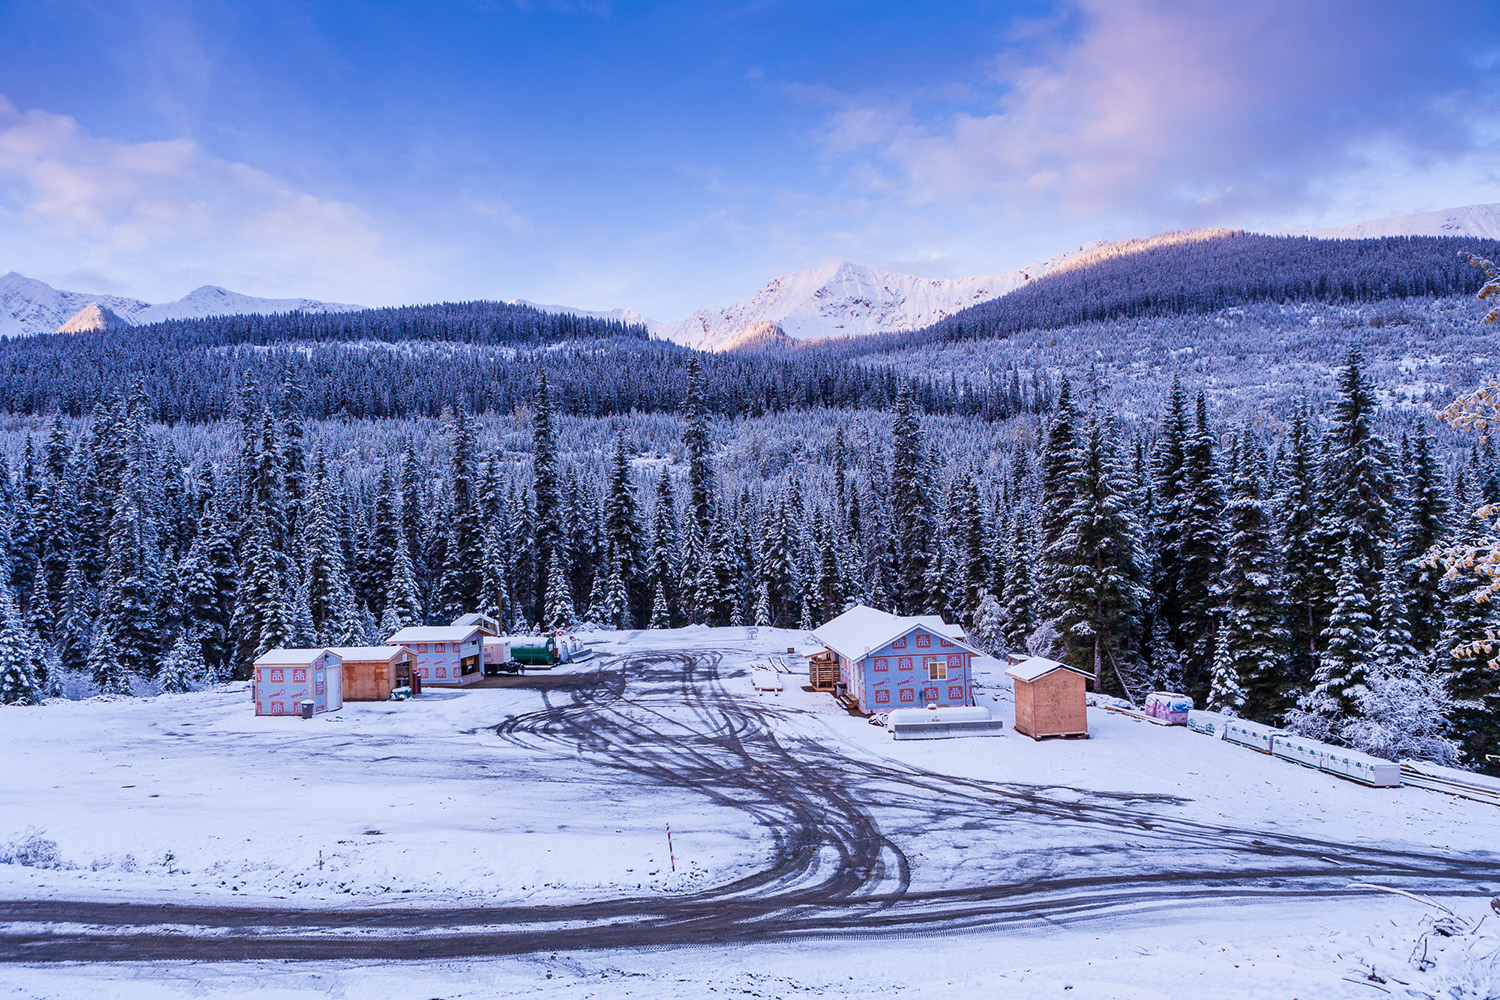 Sarah_Anderson_photography_Antarctica_Application_Landscape_fraser_gold_mining_camp_british_columbia_canada